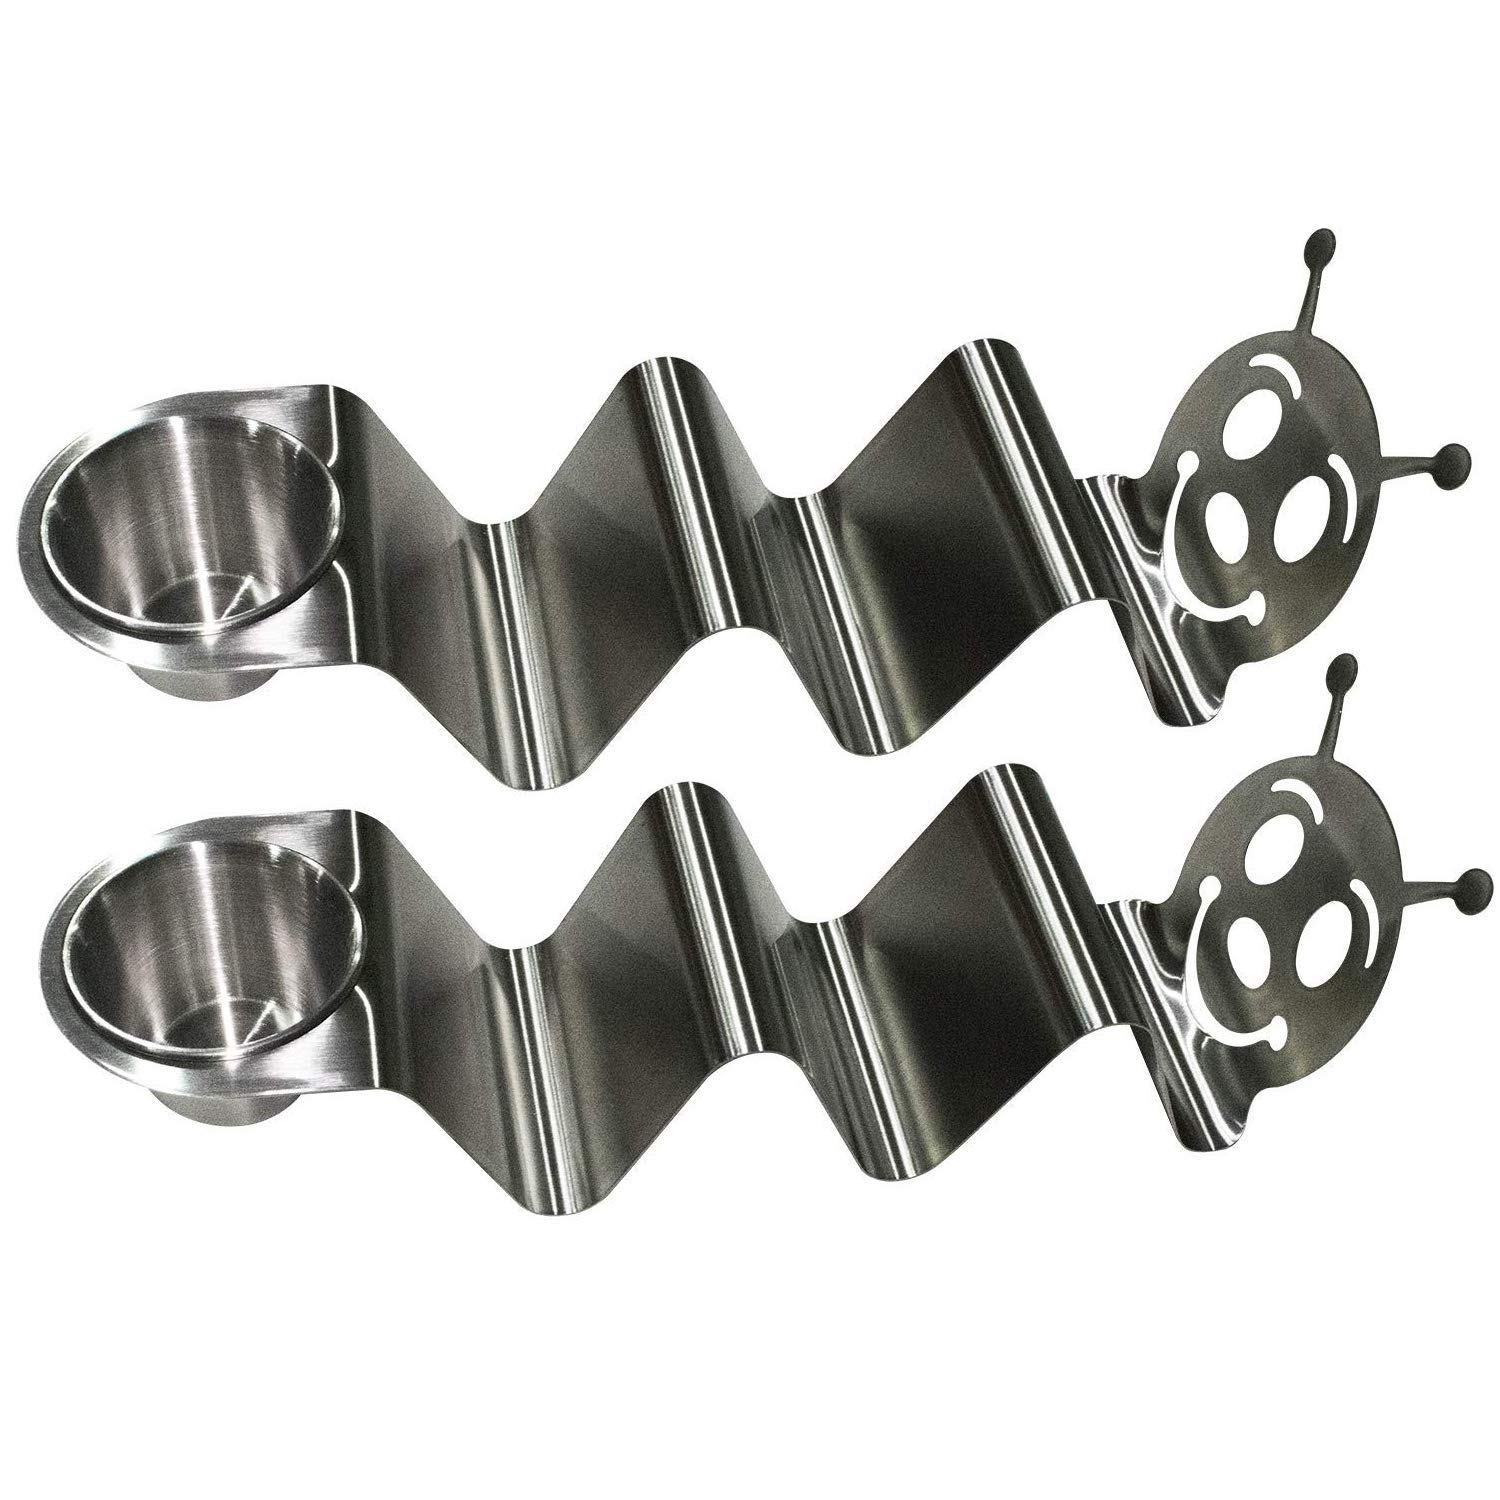 Taco Holder with Sauce Cup - Stainless Steel Metal Taco Stand - Cute Caterpillar Design Holds 3 Tacos, Hot Dogs (Set of 2)